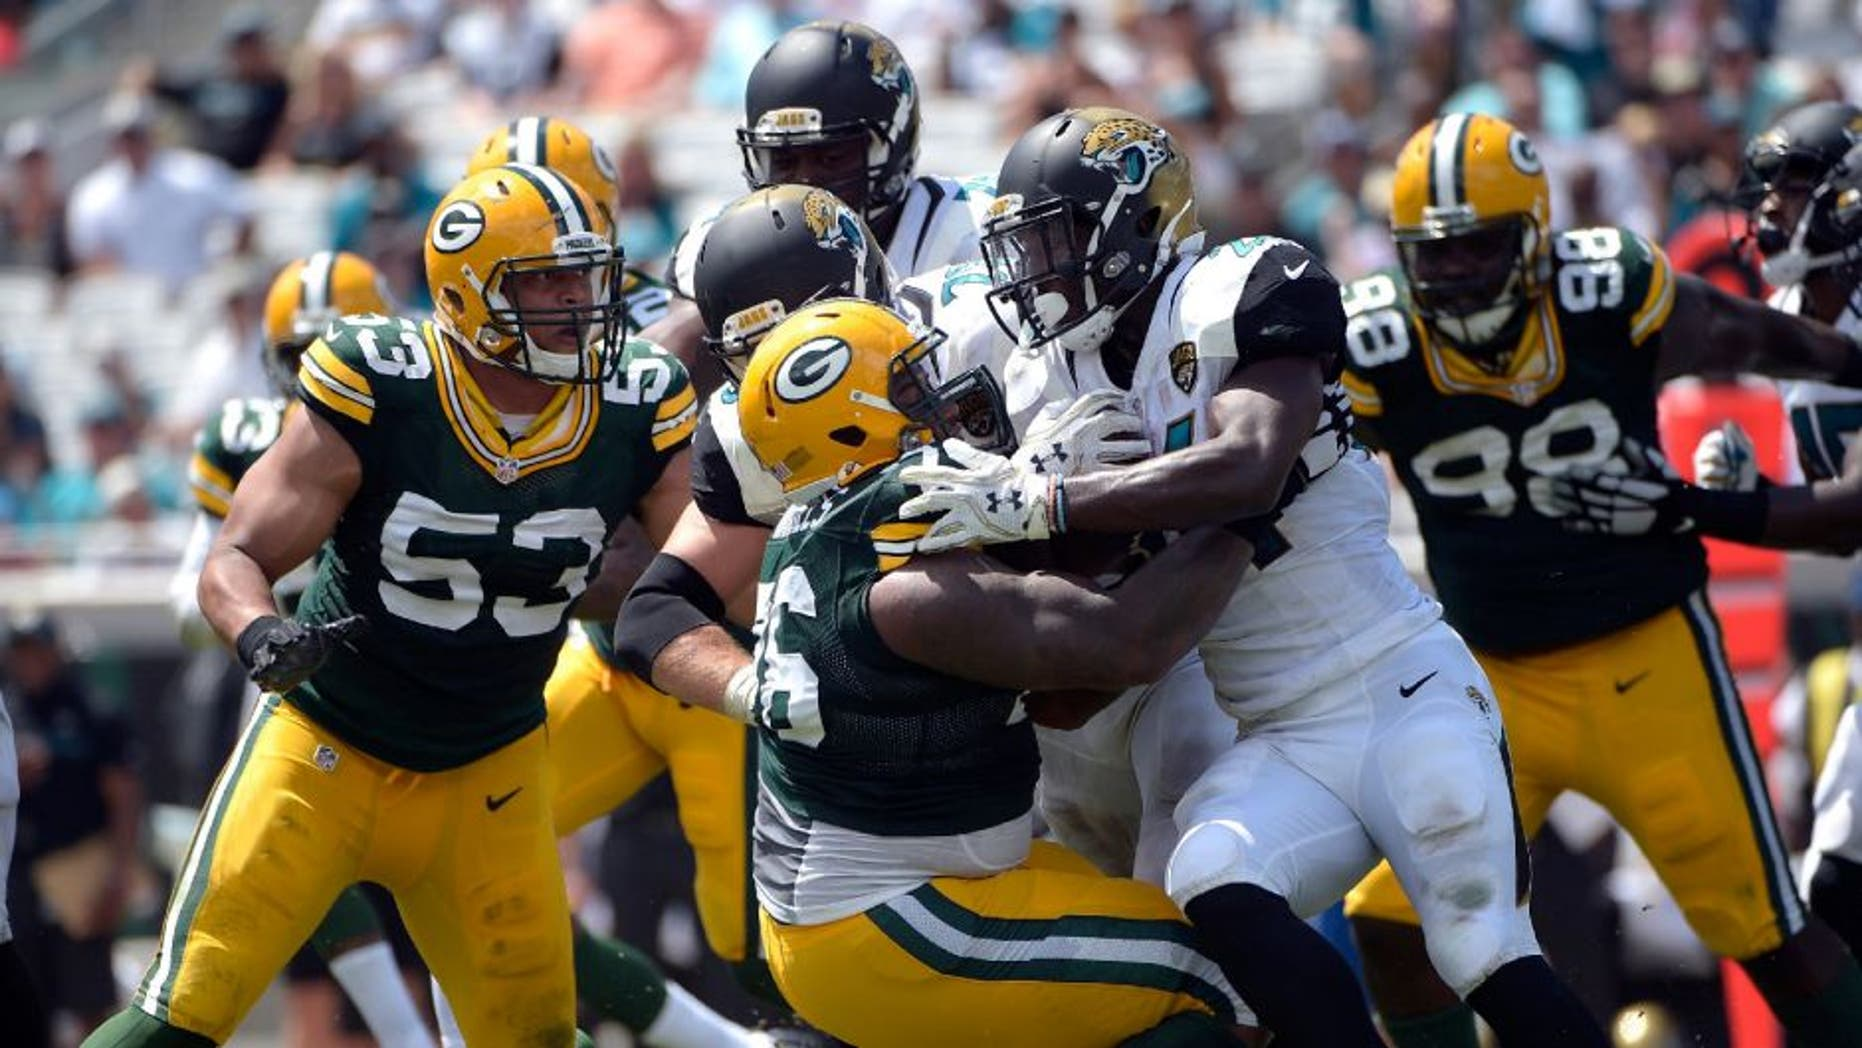 The toughest test yet of the season looms on Sunday for the Green Bay Packers' league-best run defense as they face the Dallas Cowboys.